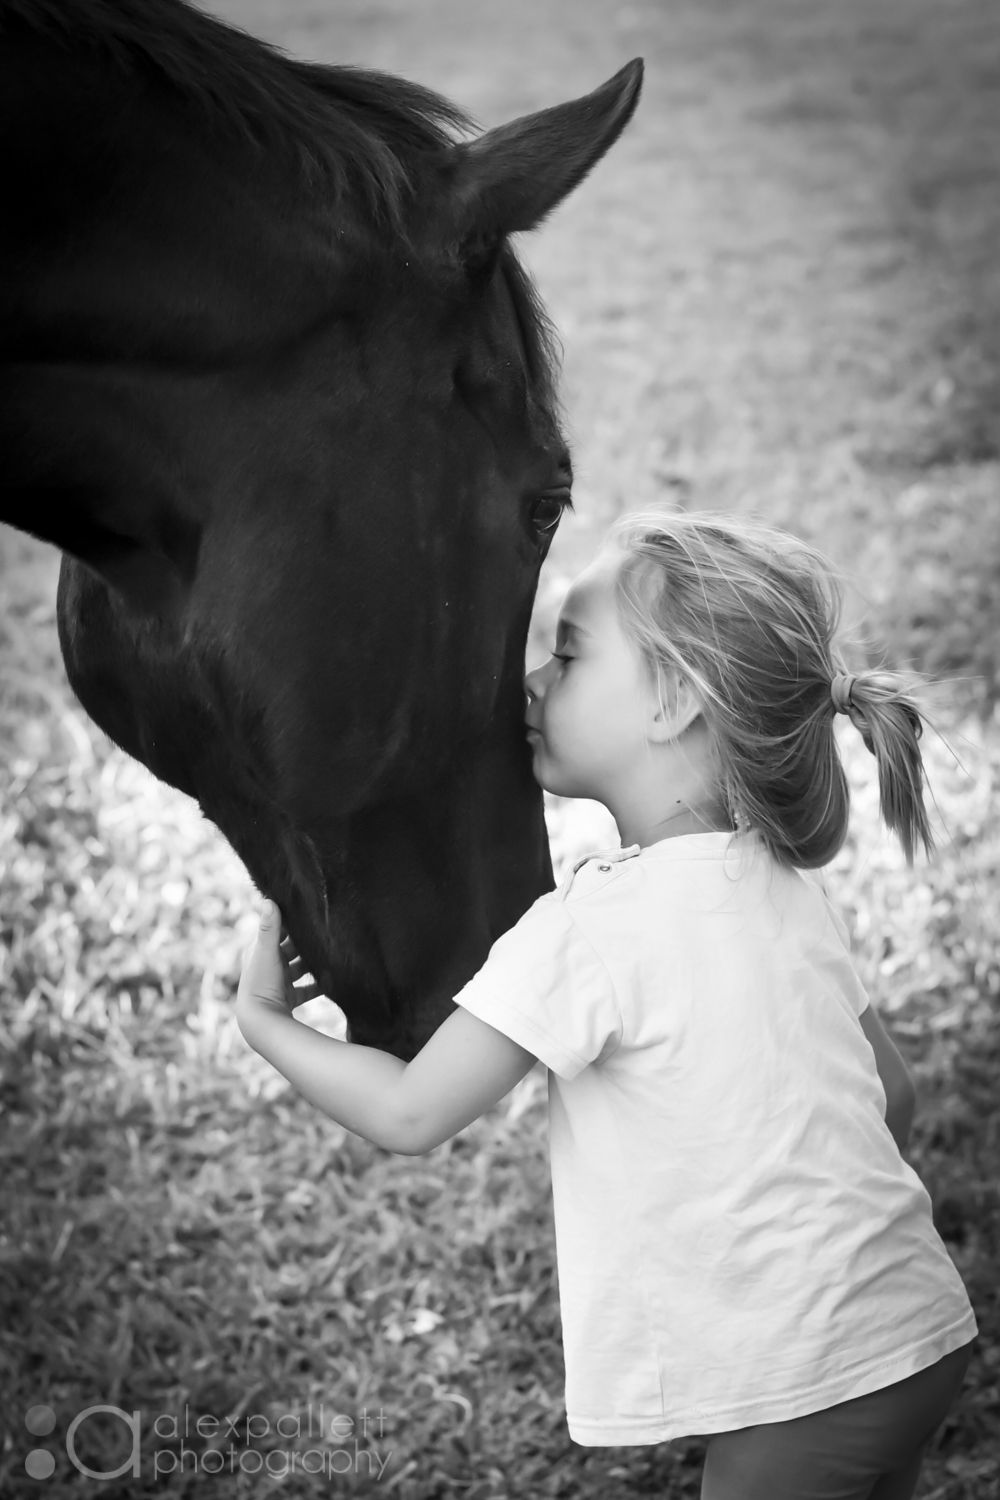 Children and Animals photographer Alex Pallett